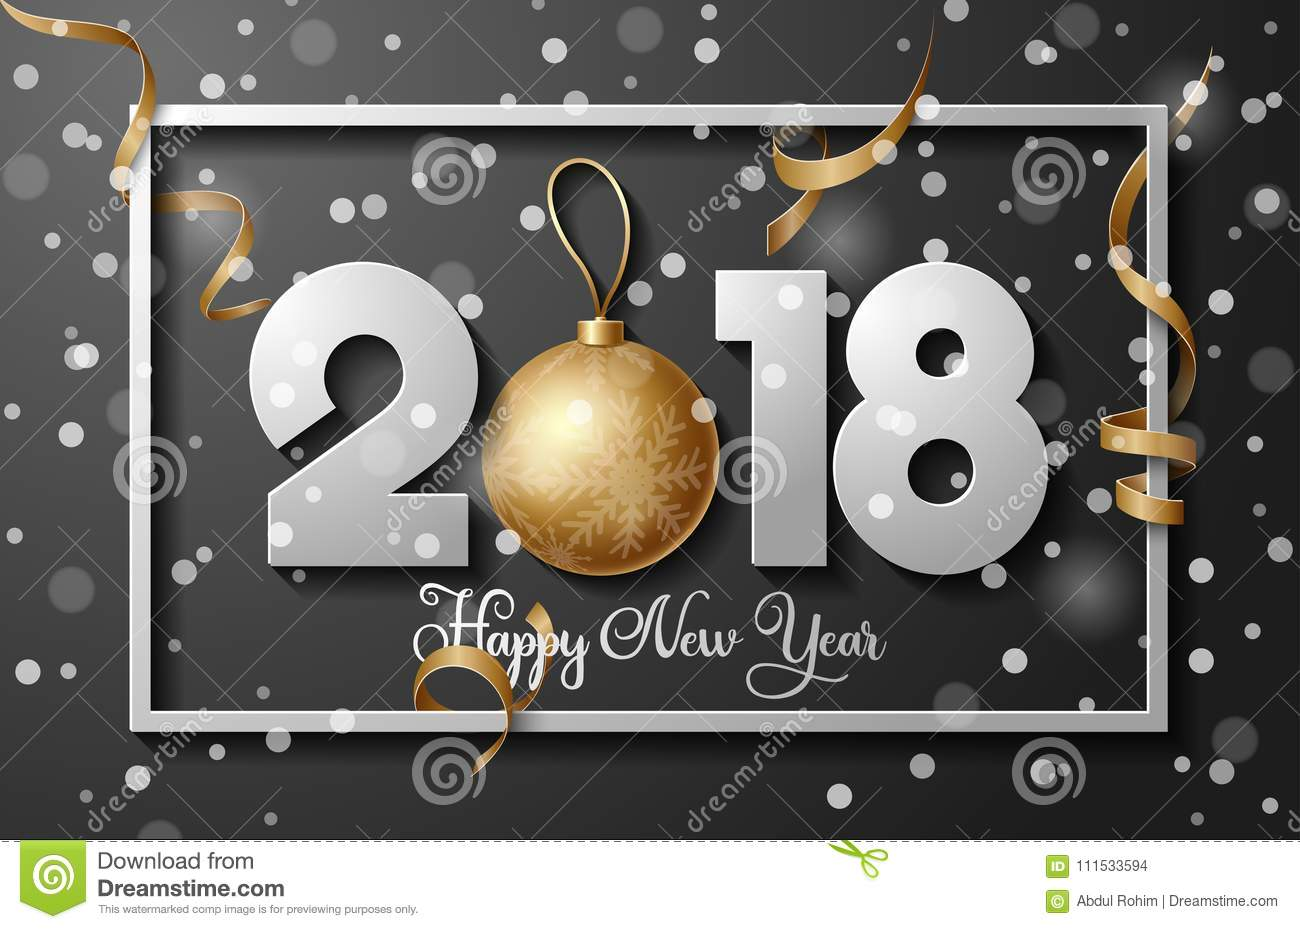 2018 happy new year background with golden christmas ball bauble and stripes elements